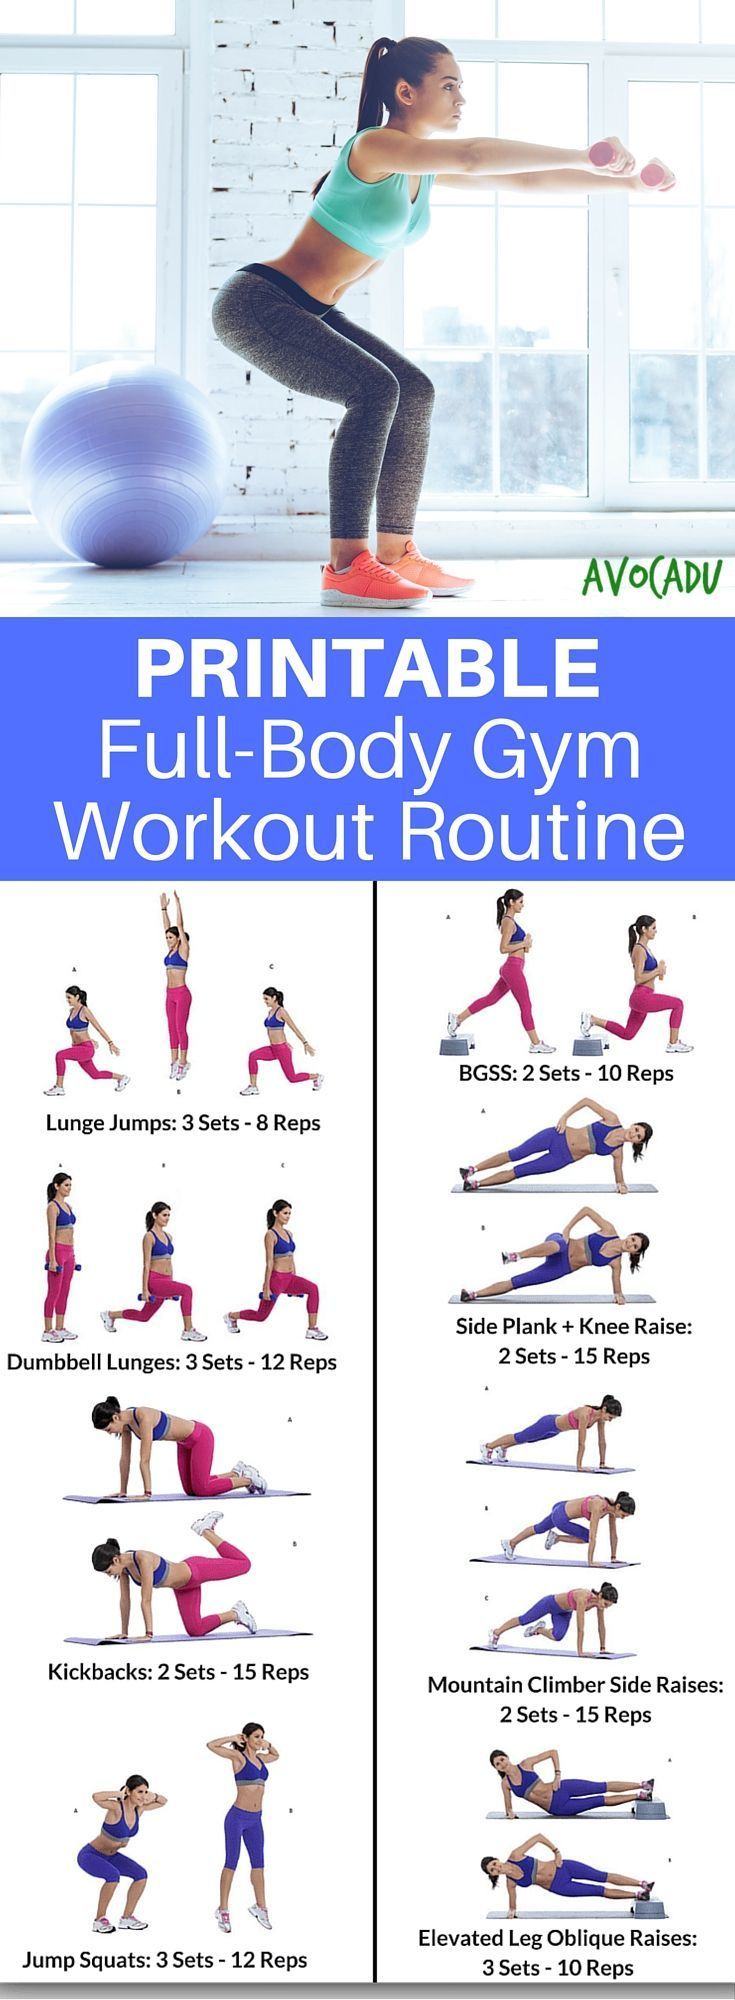 picture about Printable Workout Plans for Beginners referred to as Via billupsforcongress Weekly Gymnasium Exercise routine Program For Rookies